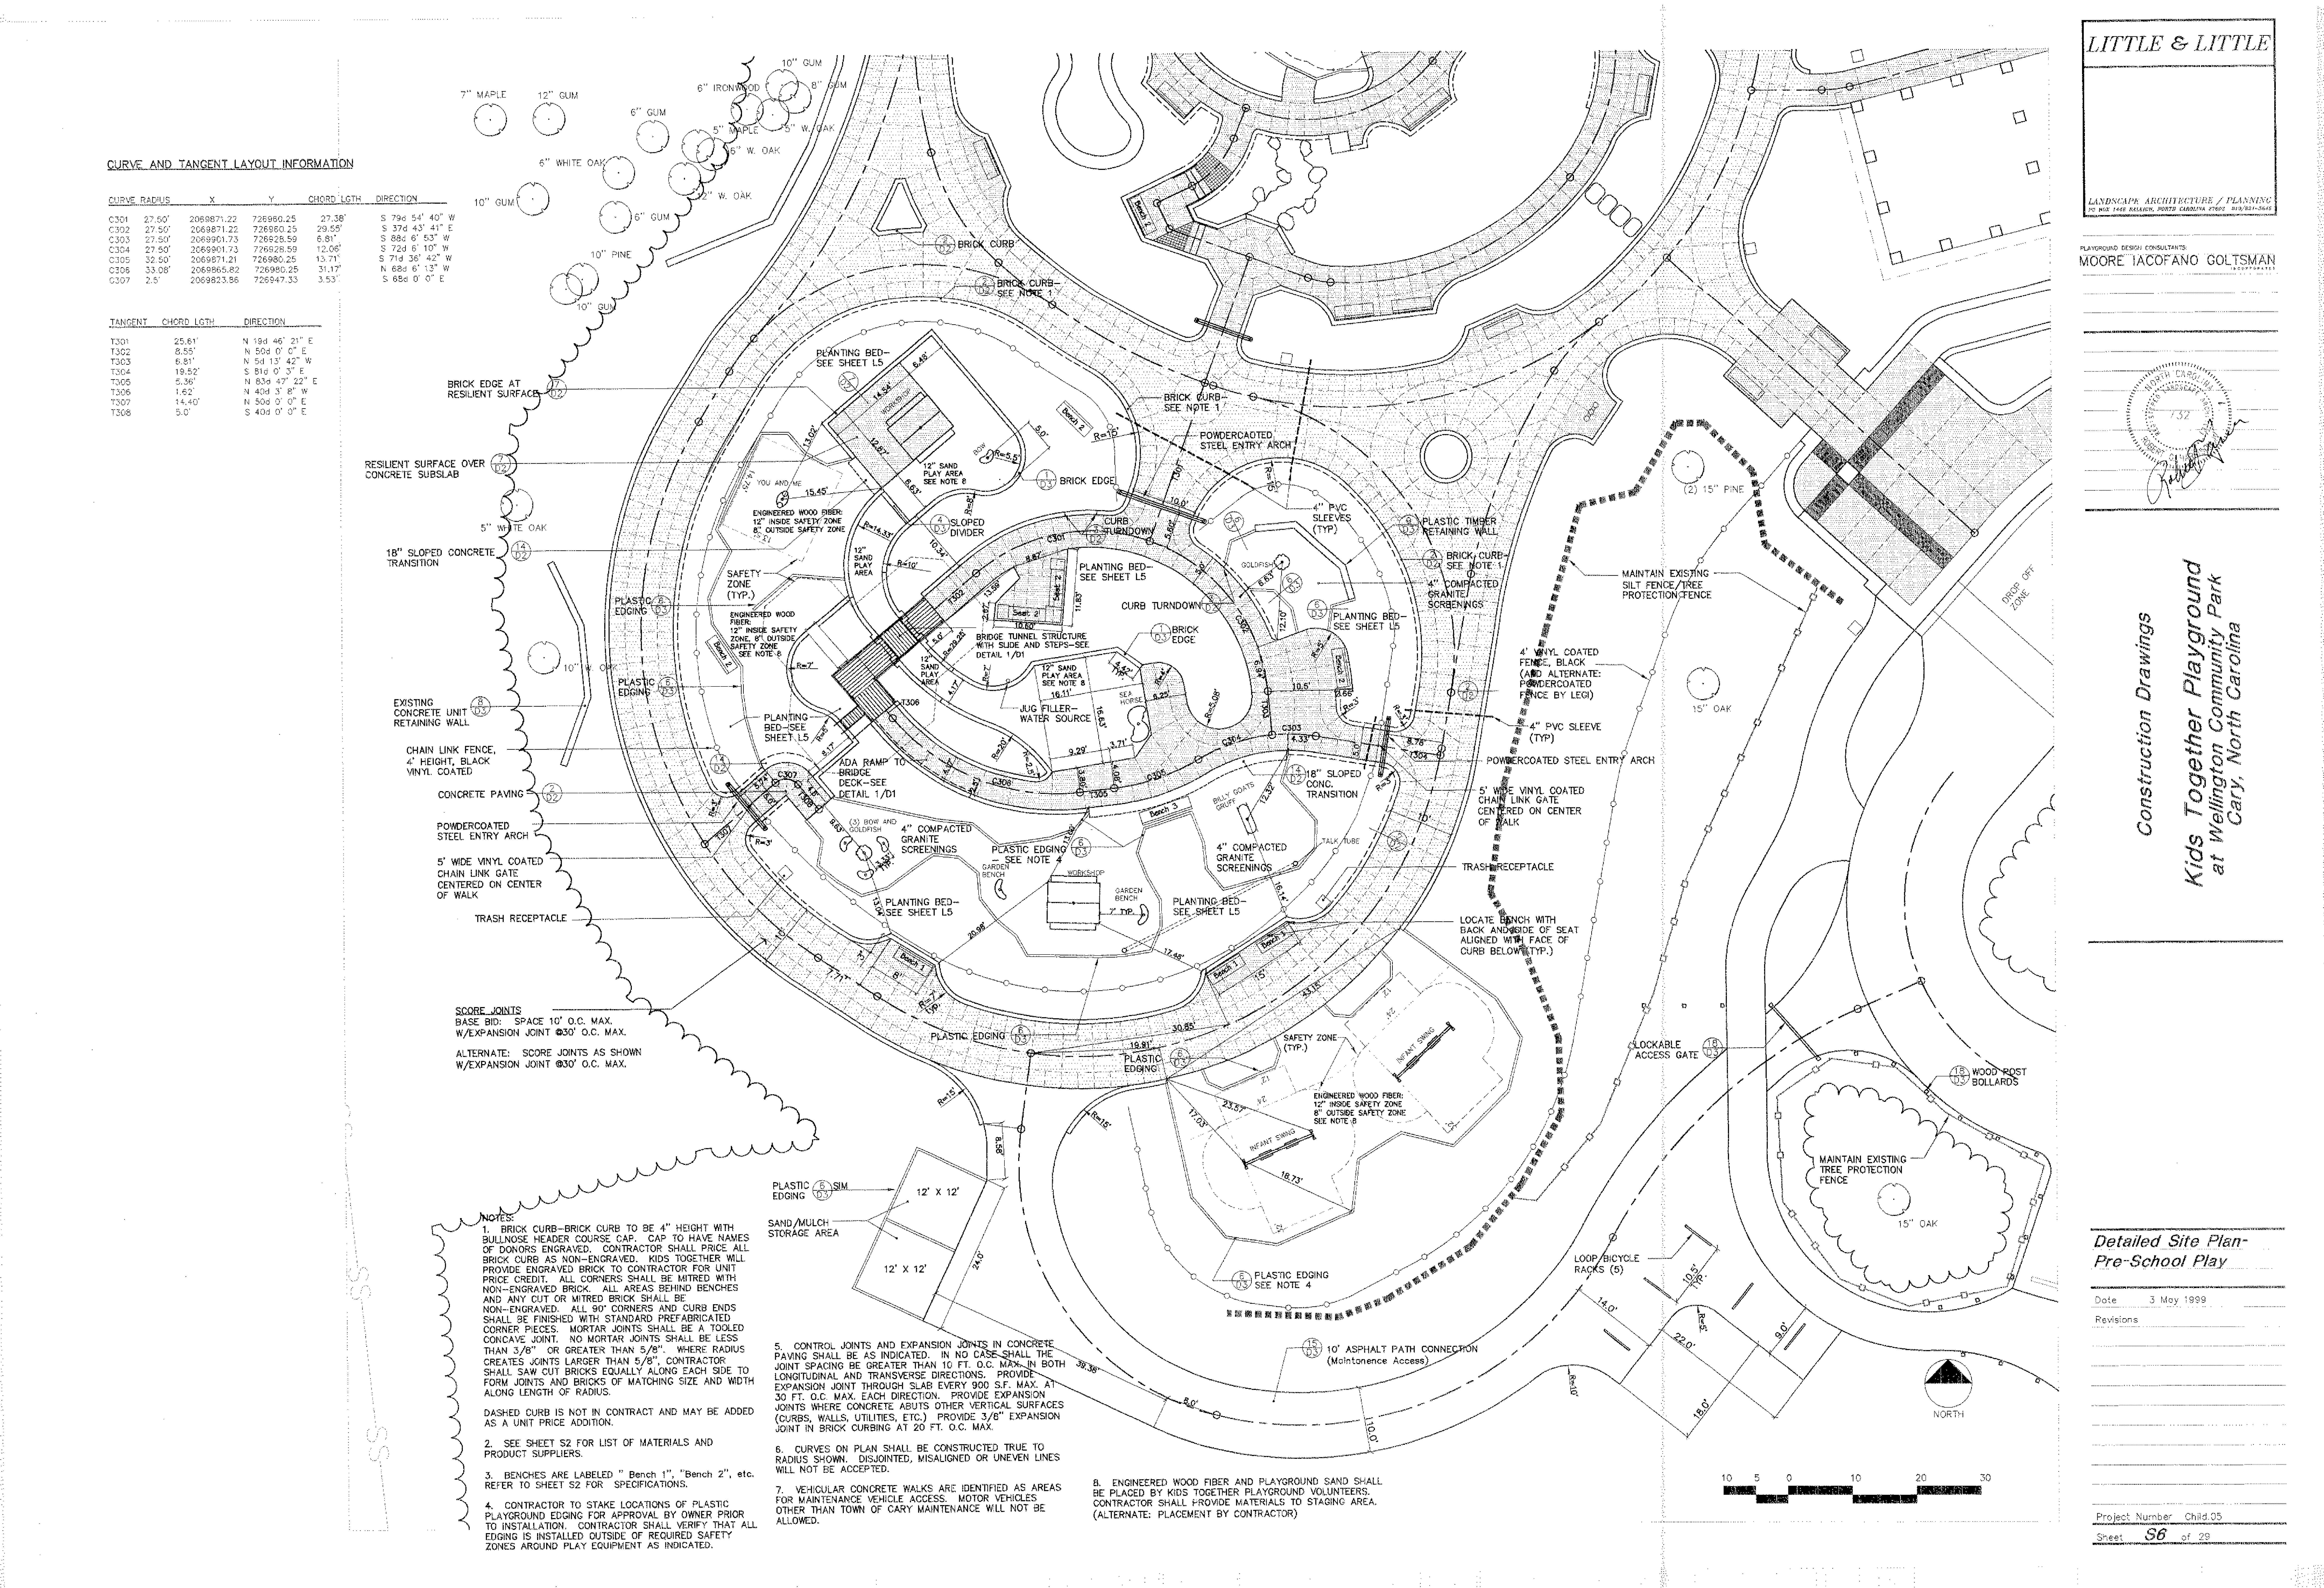 Plan drawing of park site